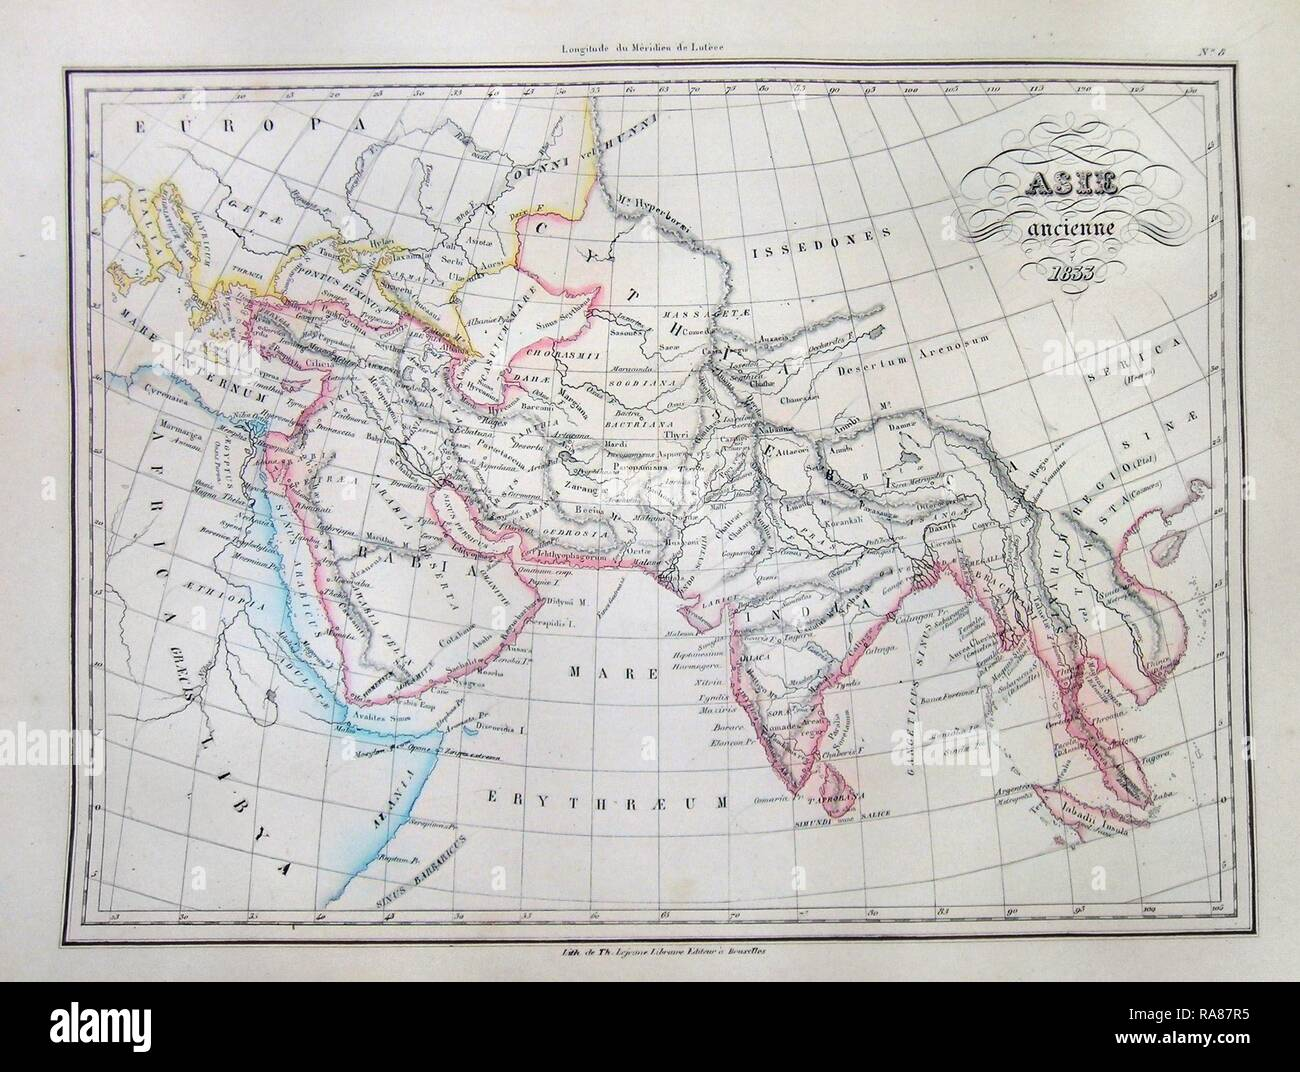 1833, Malte-Brun Map of Asia in Ancient Times. Reimagined by Gibon. Classic art with a modern twist reimagined - Stock Image